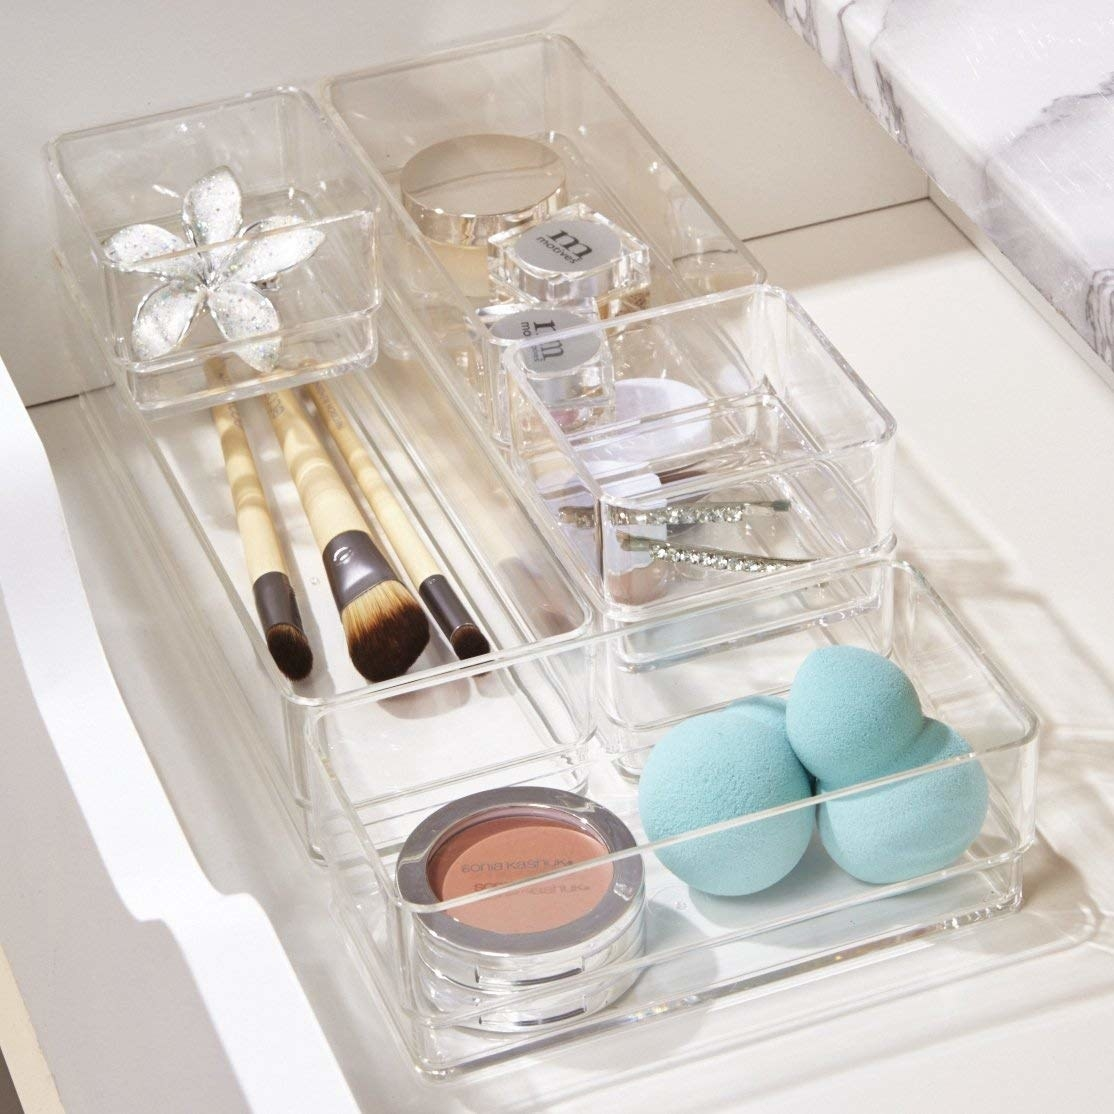 """Promising review: """"This set is exactly what I've been looking for. They fit perfectly in my drawers, and stacked they are the exact depth of the shallow drawer in my vanity. Perfect for organizing all the small tools and bits of makeup, bottles of perfume and tubes of medicine etc. Appear to be heavy/high quality enough to last a long time."""" —S. KnoxGet the set on Amazon for $14.99."""